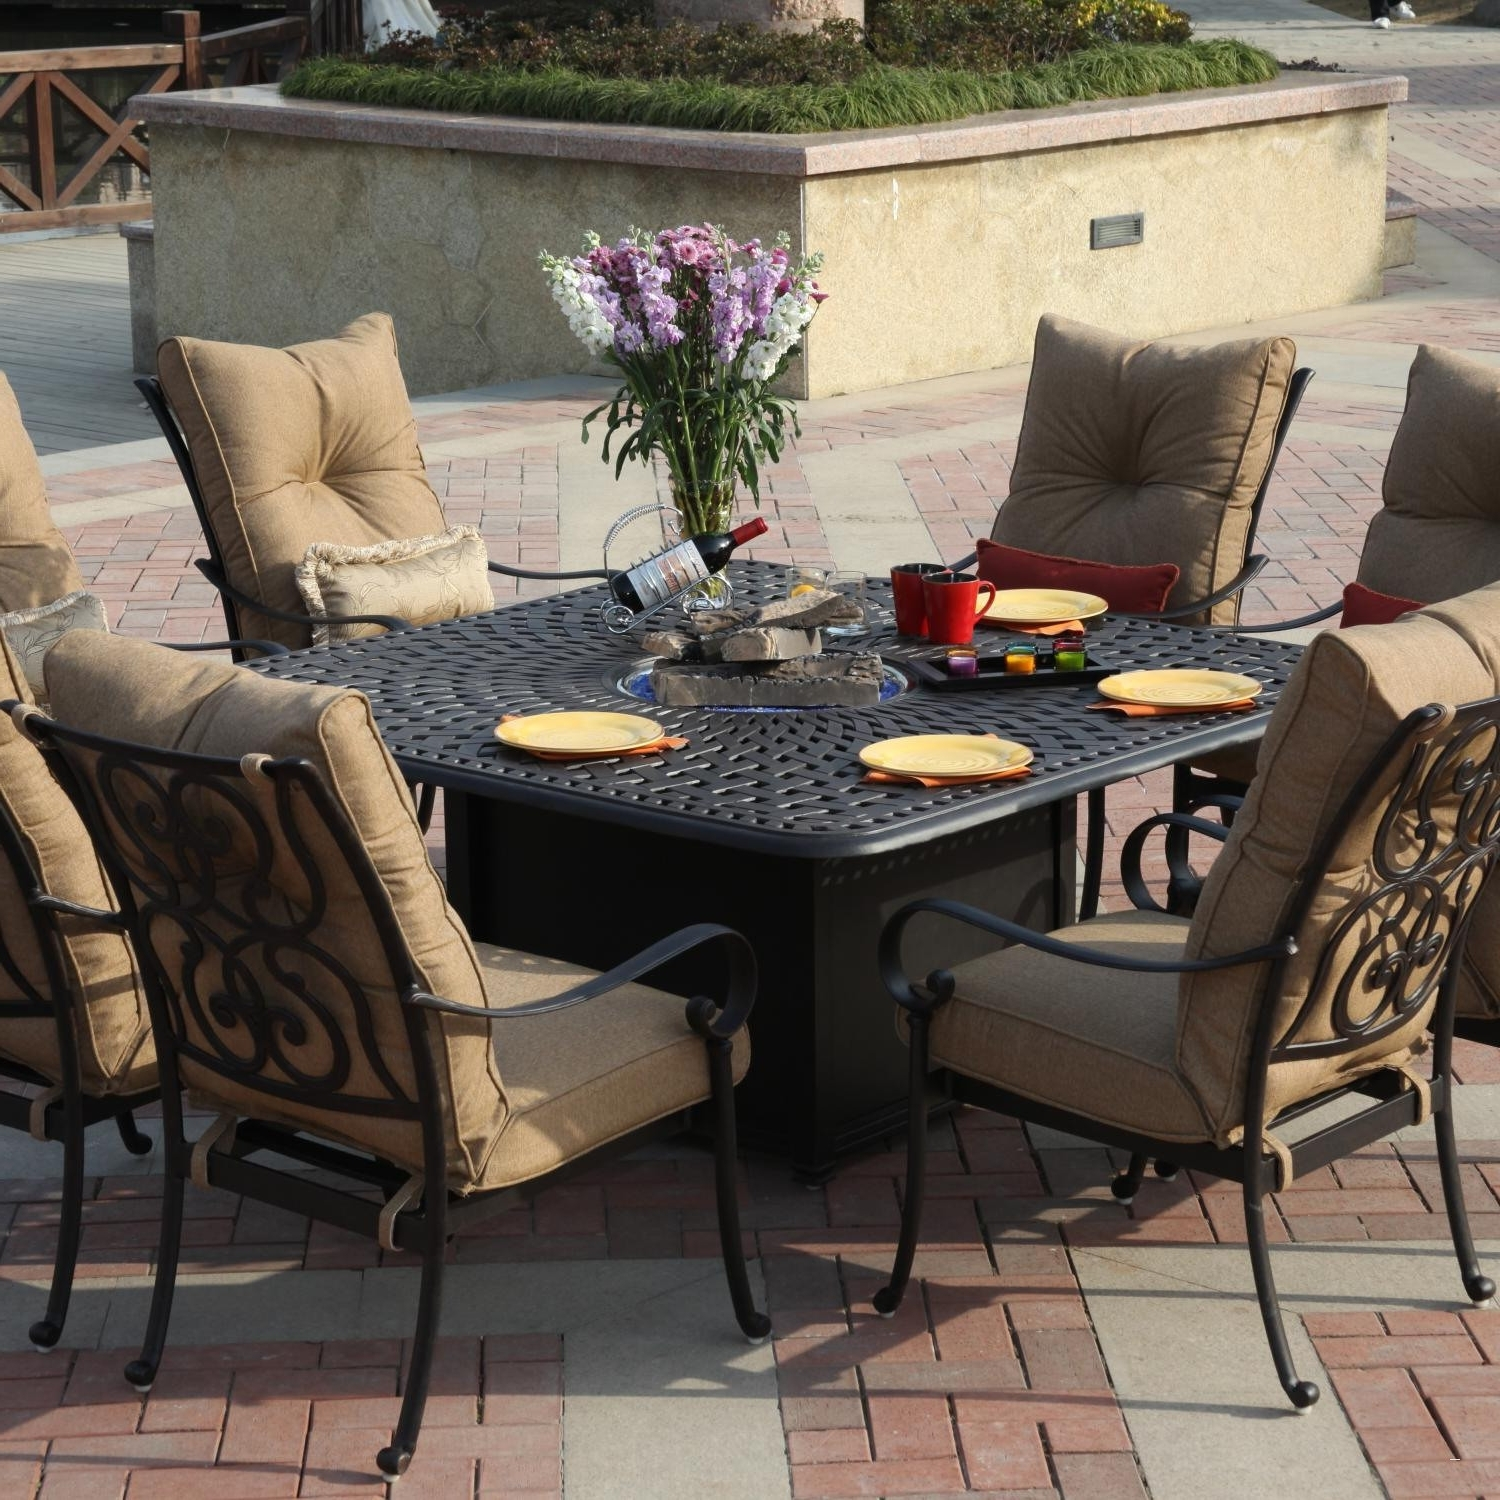 Patio Conversation Sets With Propane Fire Pit Intended For Best And Newest Patio Furniture Sets With Fire Pit Brilliant Sets Stone Harbor (View 17 of 20)